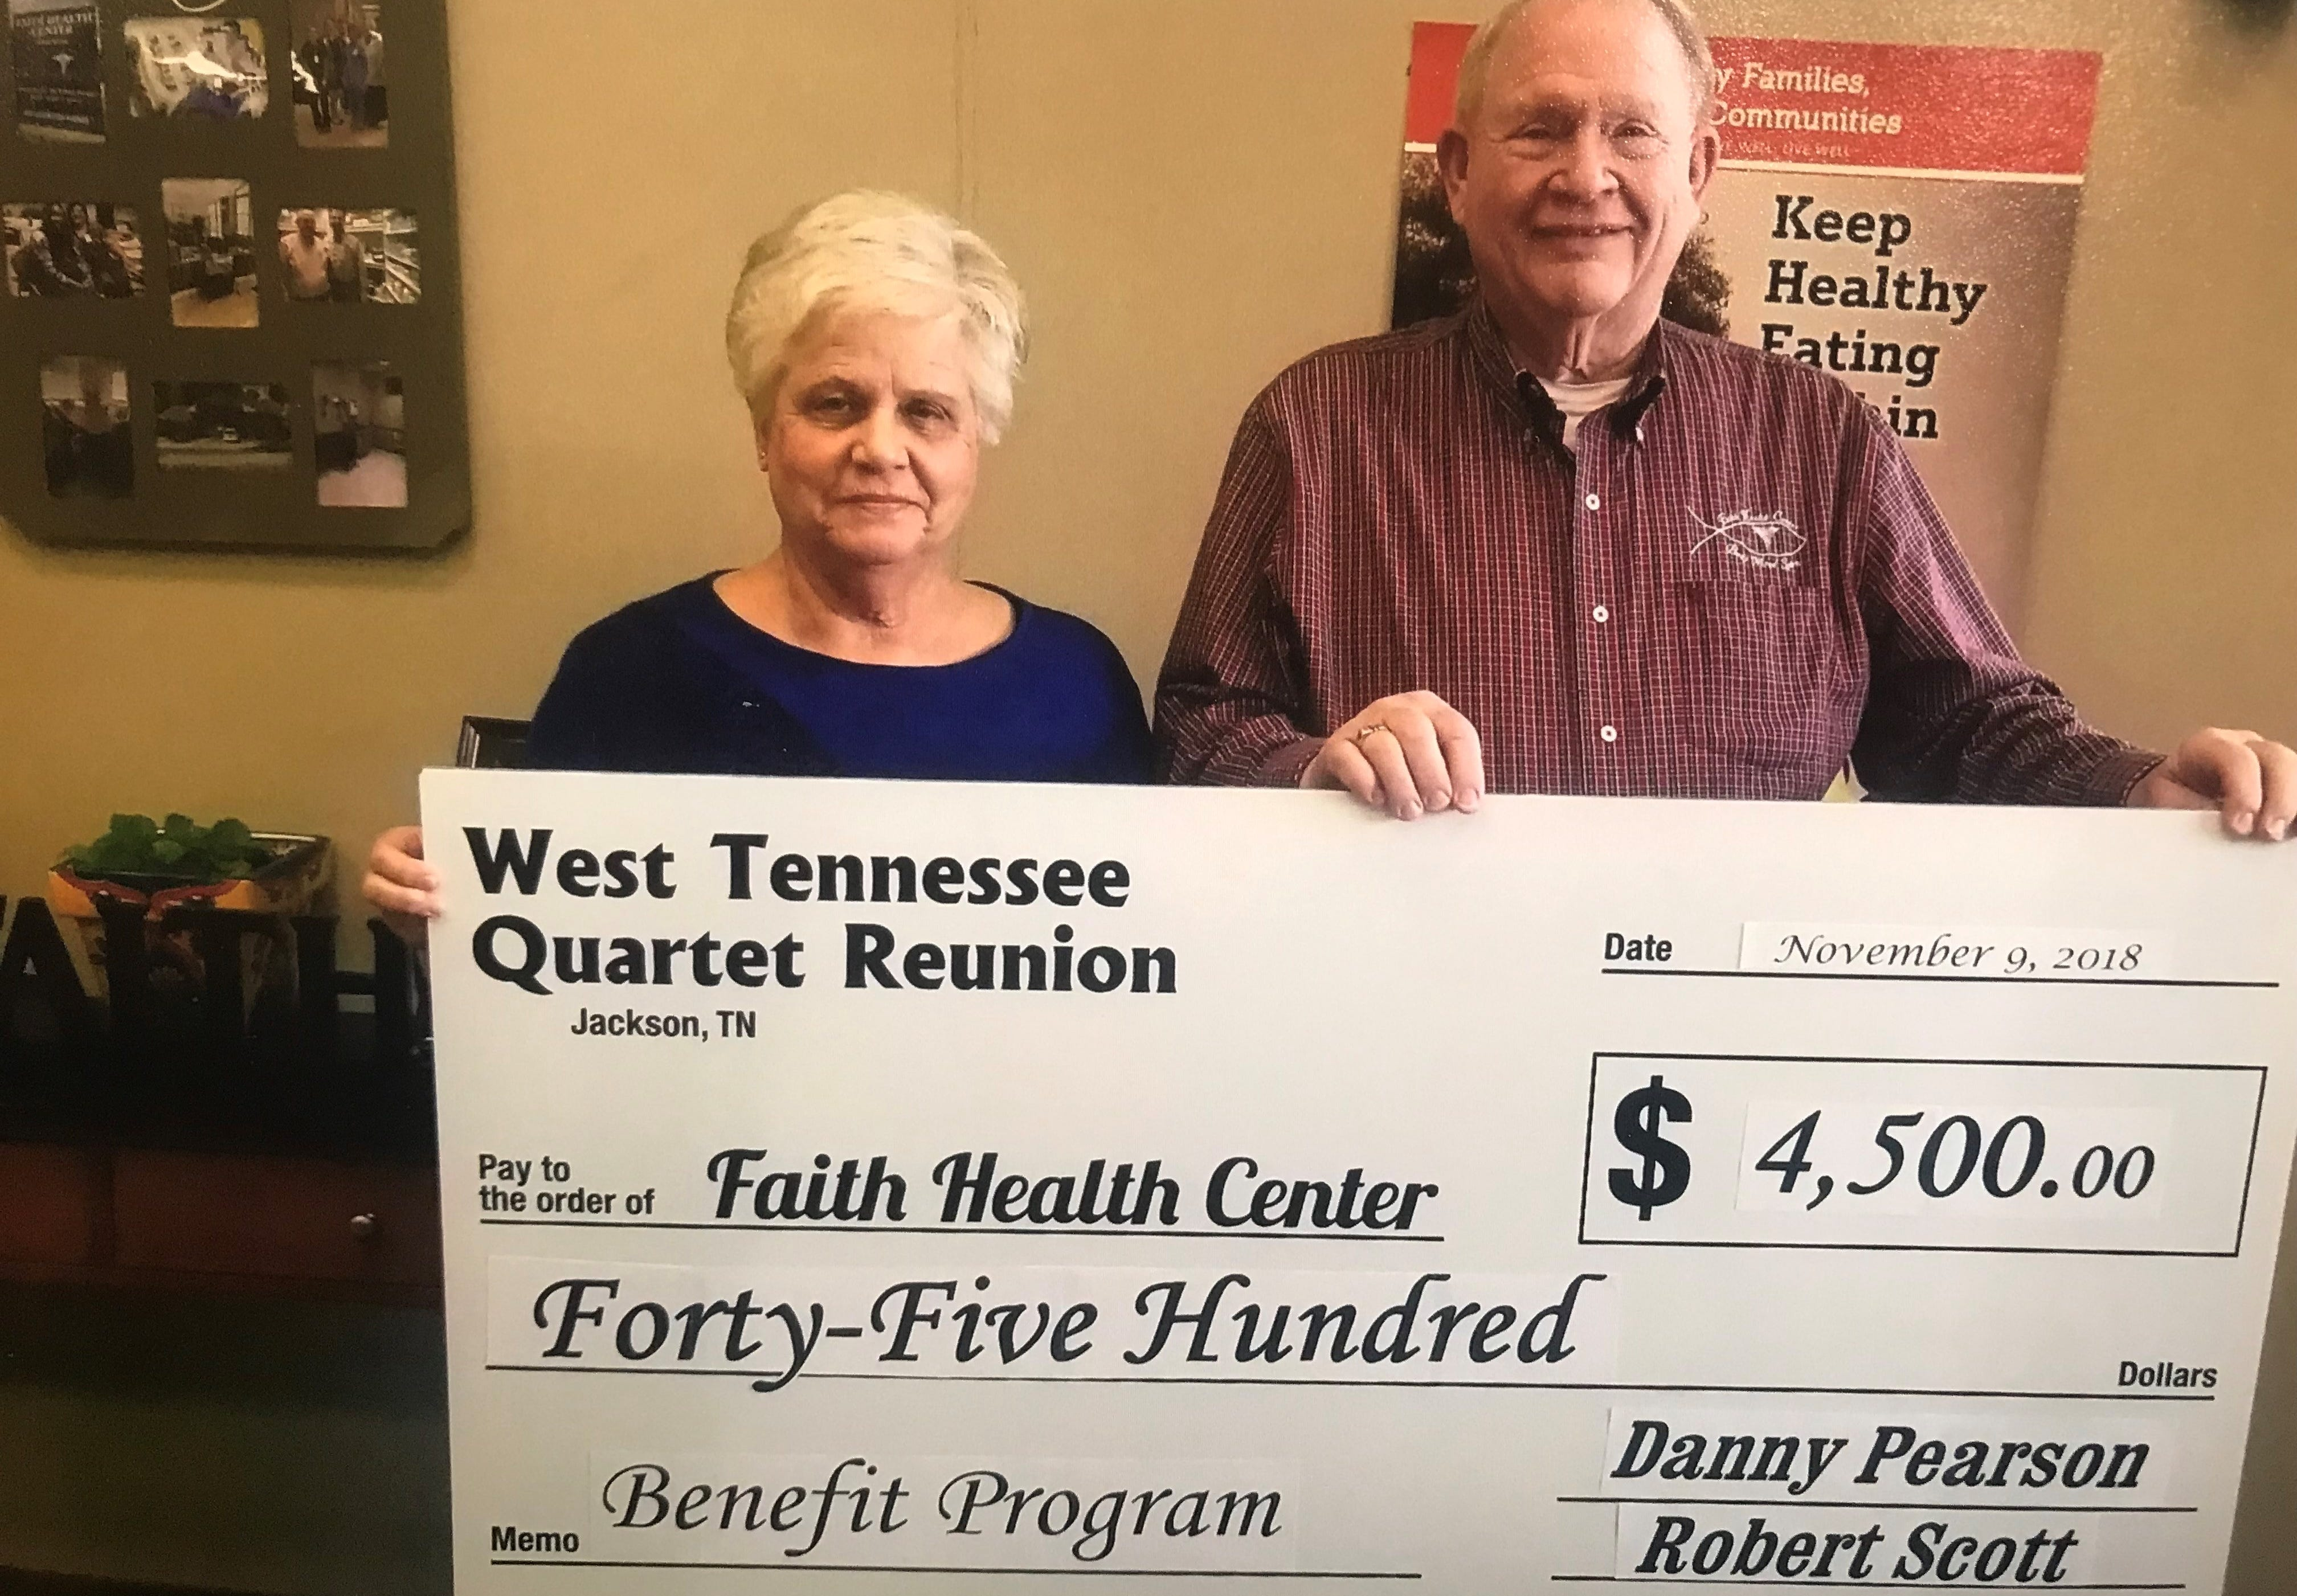 Dr. David Larsen, and his wife Sara, accept a check for $4,500 from the West Tennessee Quartet Reunion.